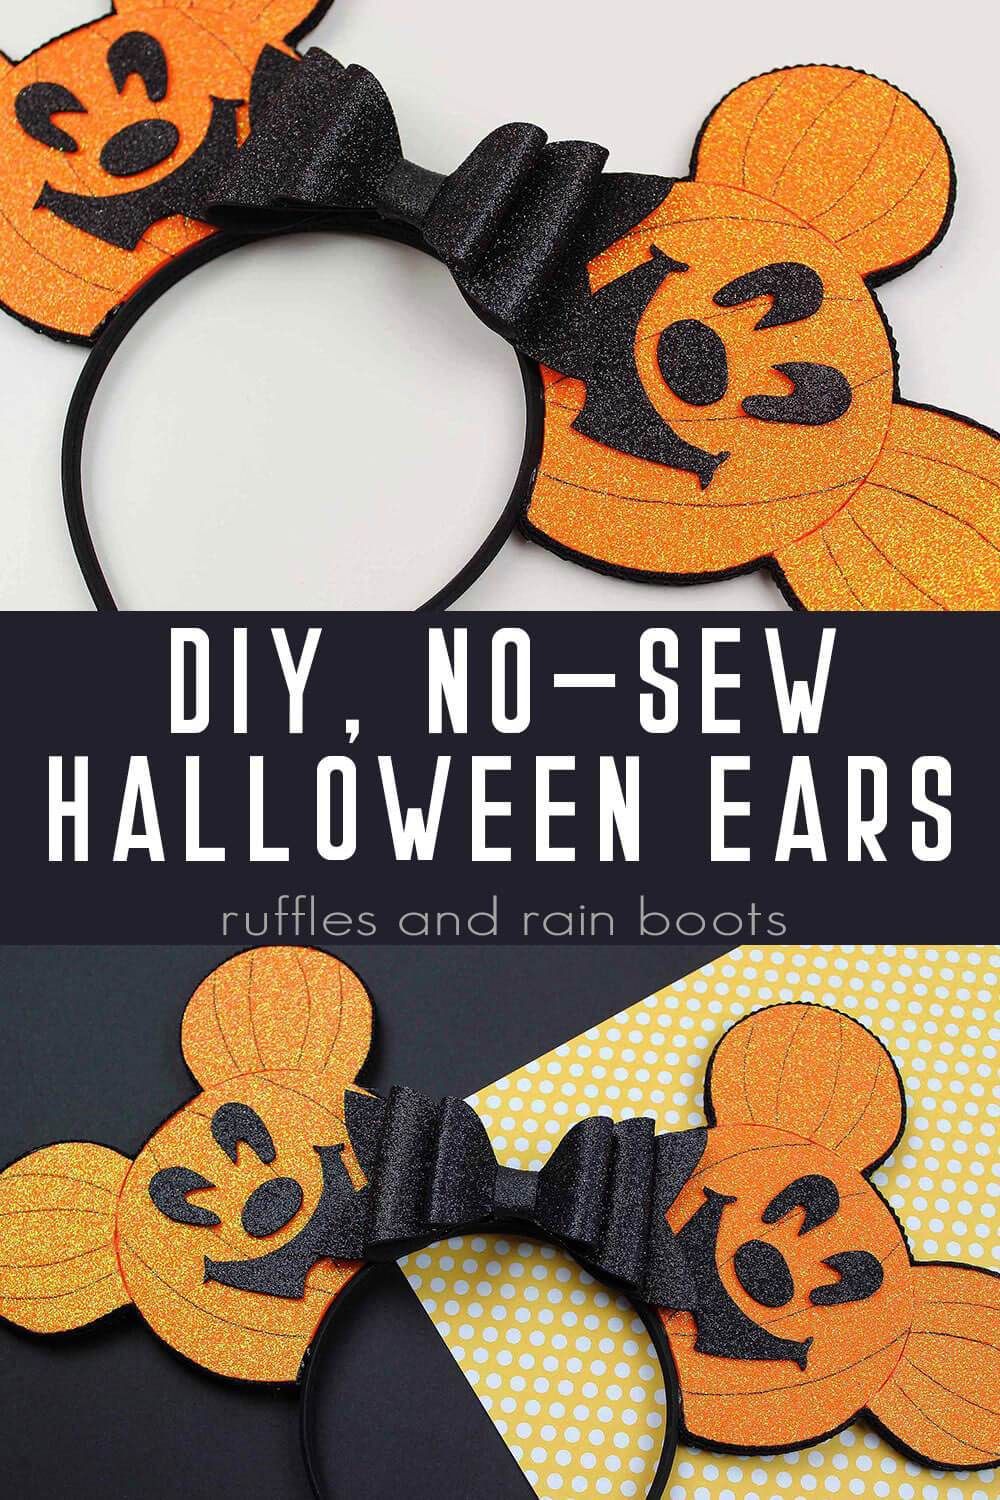 collage of Pumpkin head Mickey ears with text which reads DIY no sew Halloween ears